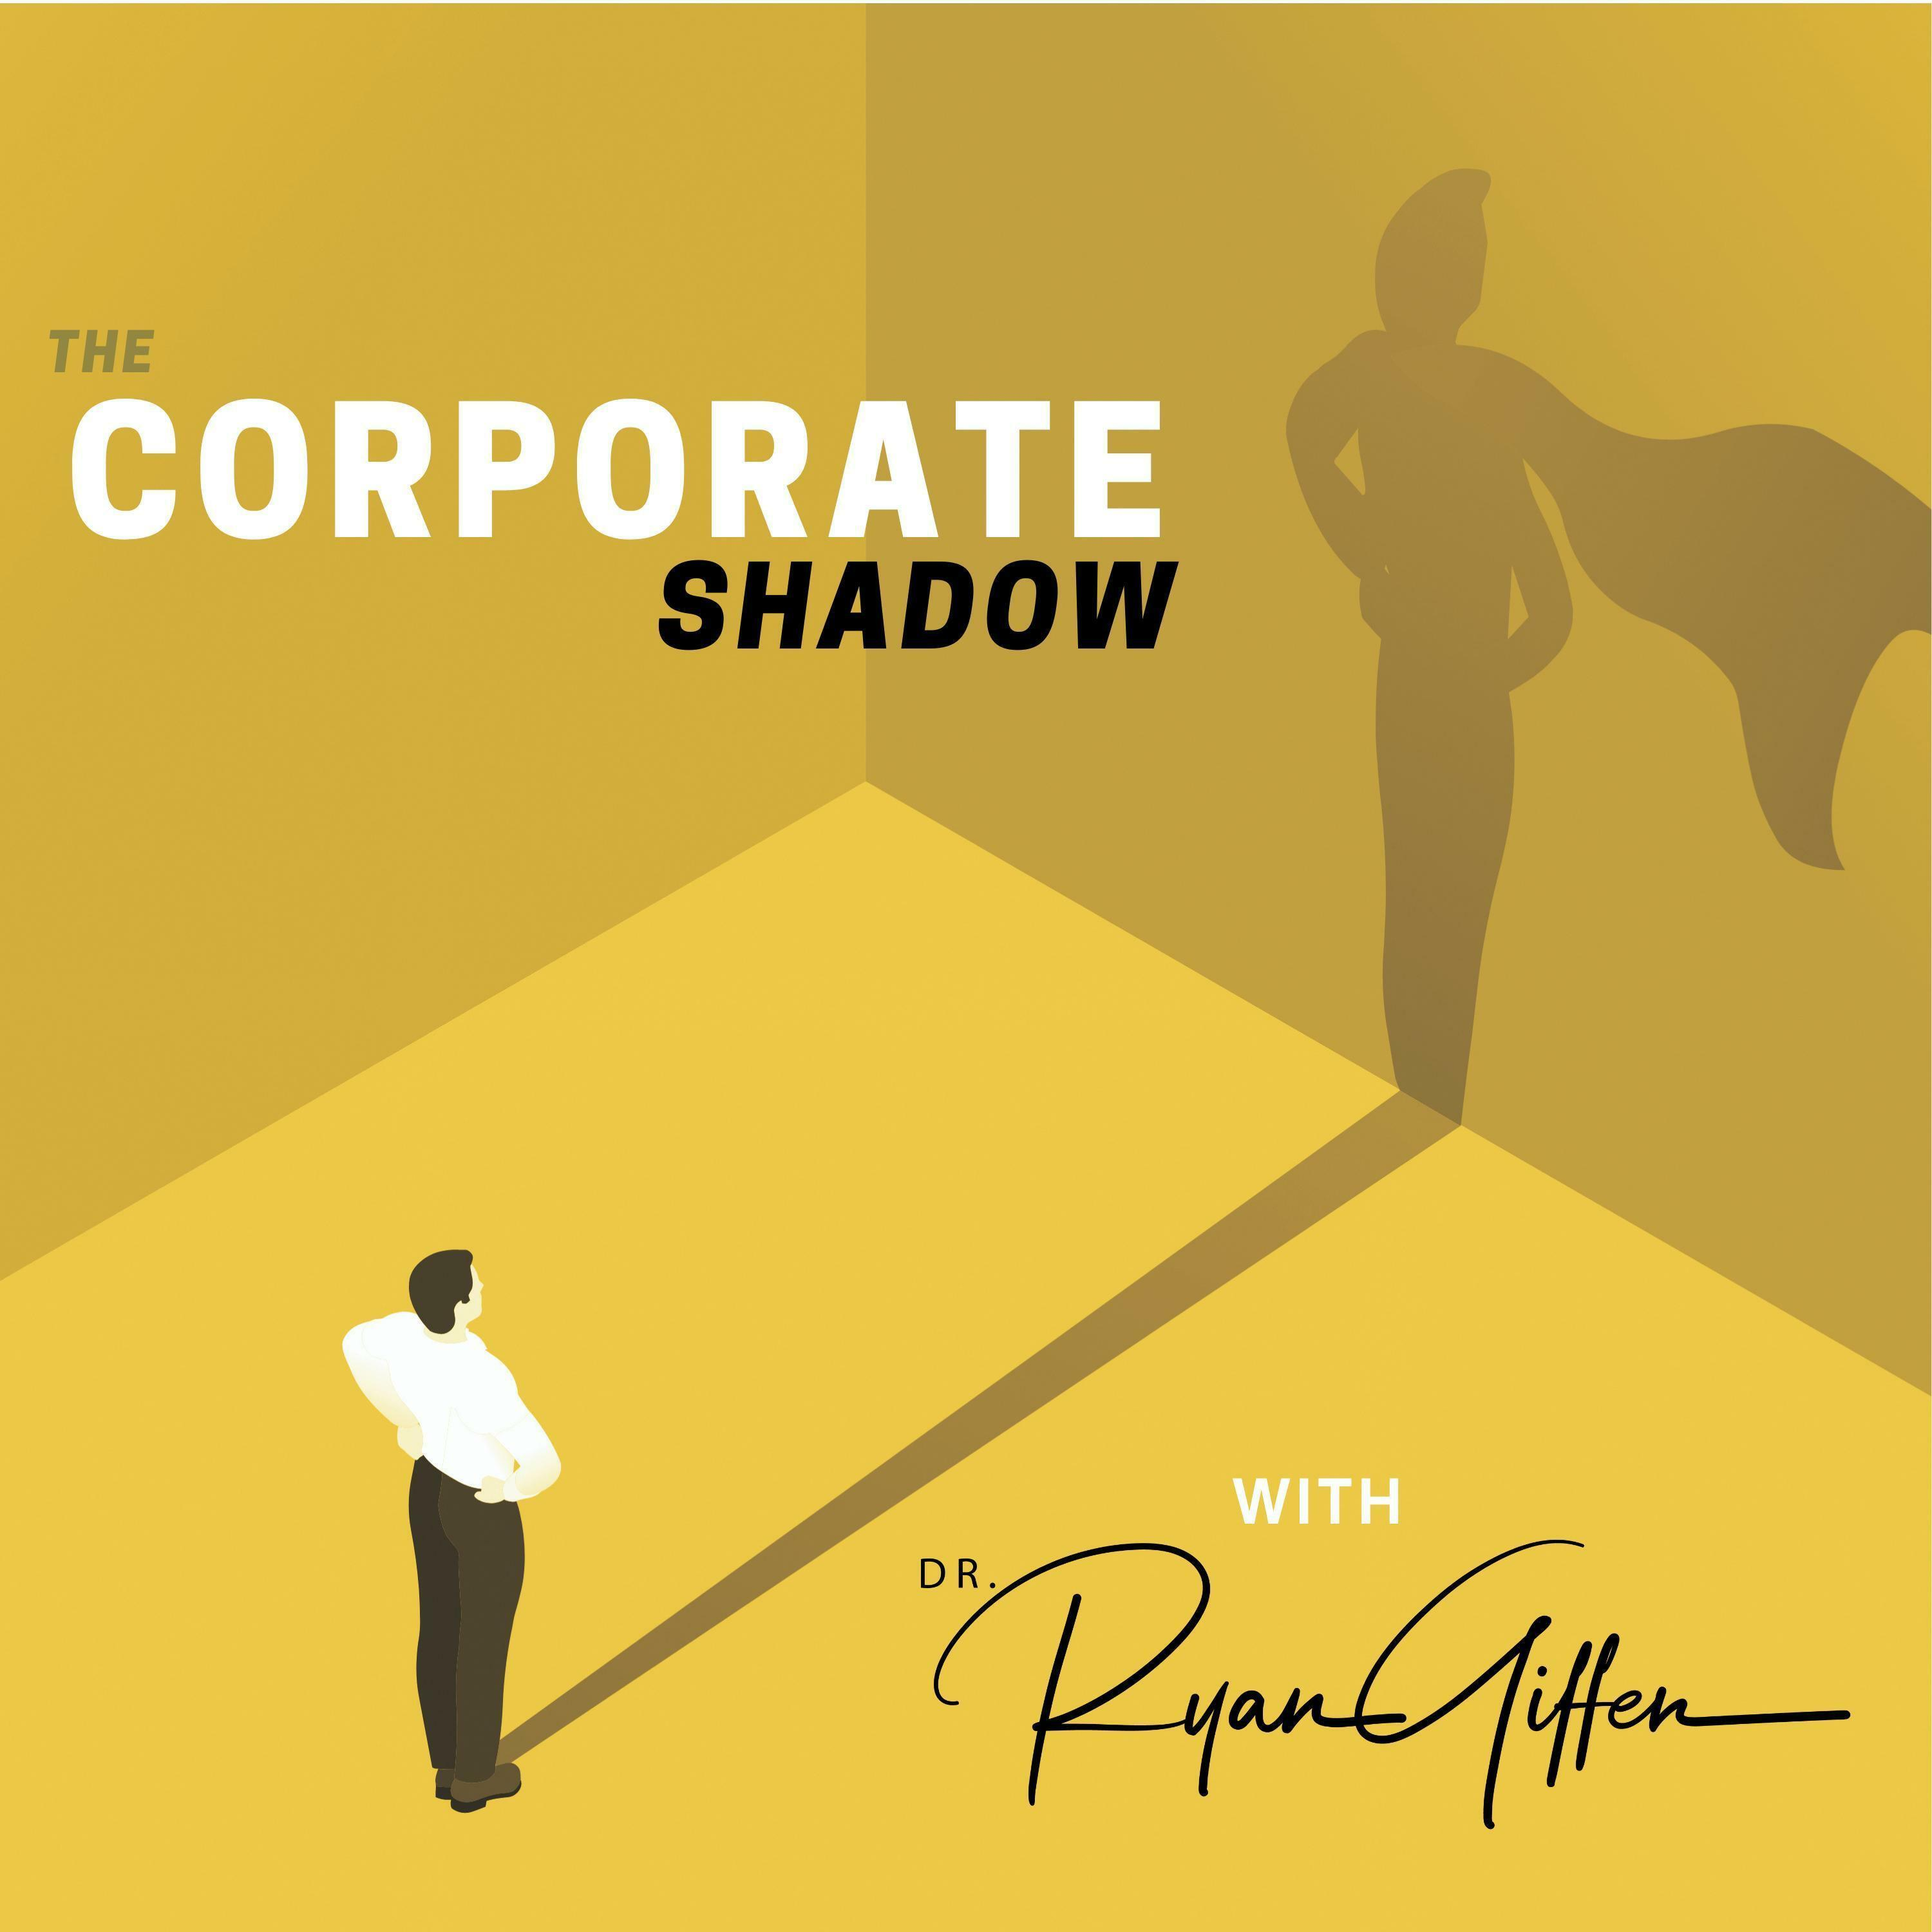 The Corporate Shadow